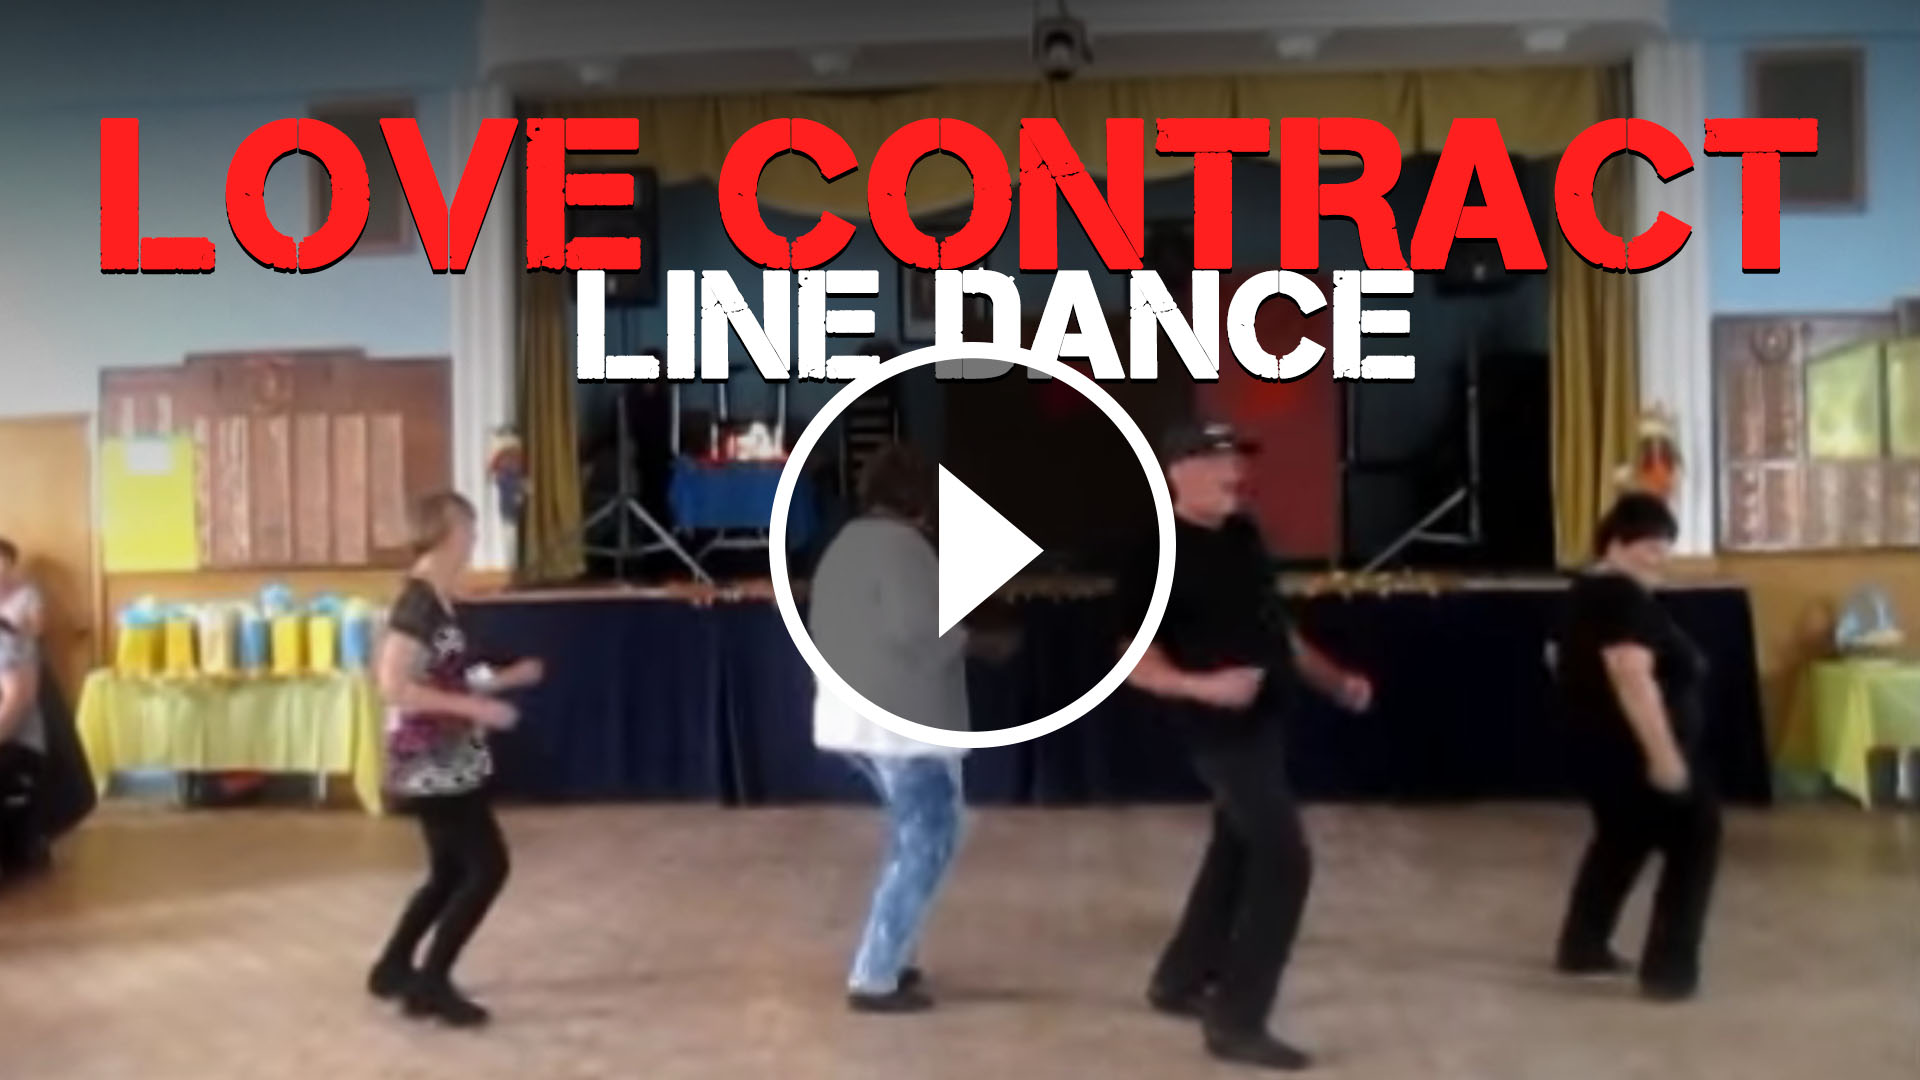 Backyard Party Line Dance : Love Contract Line Dance